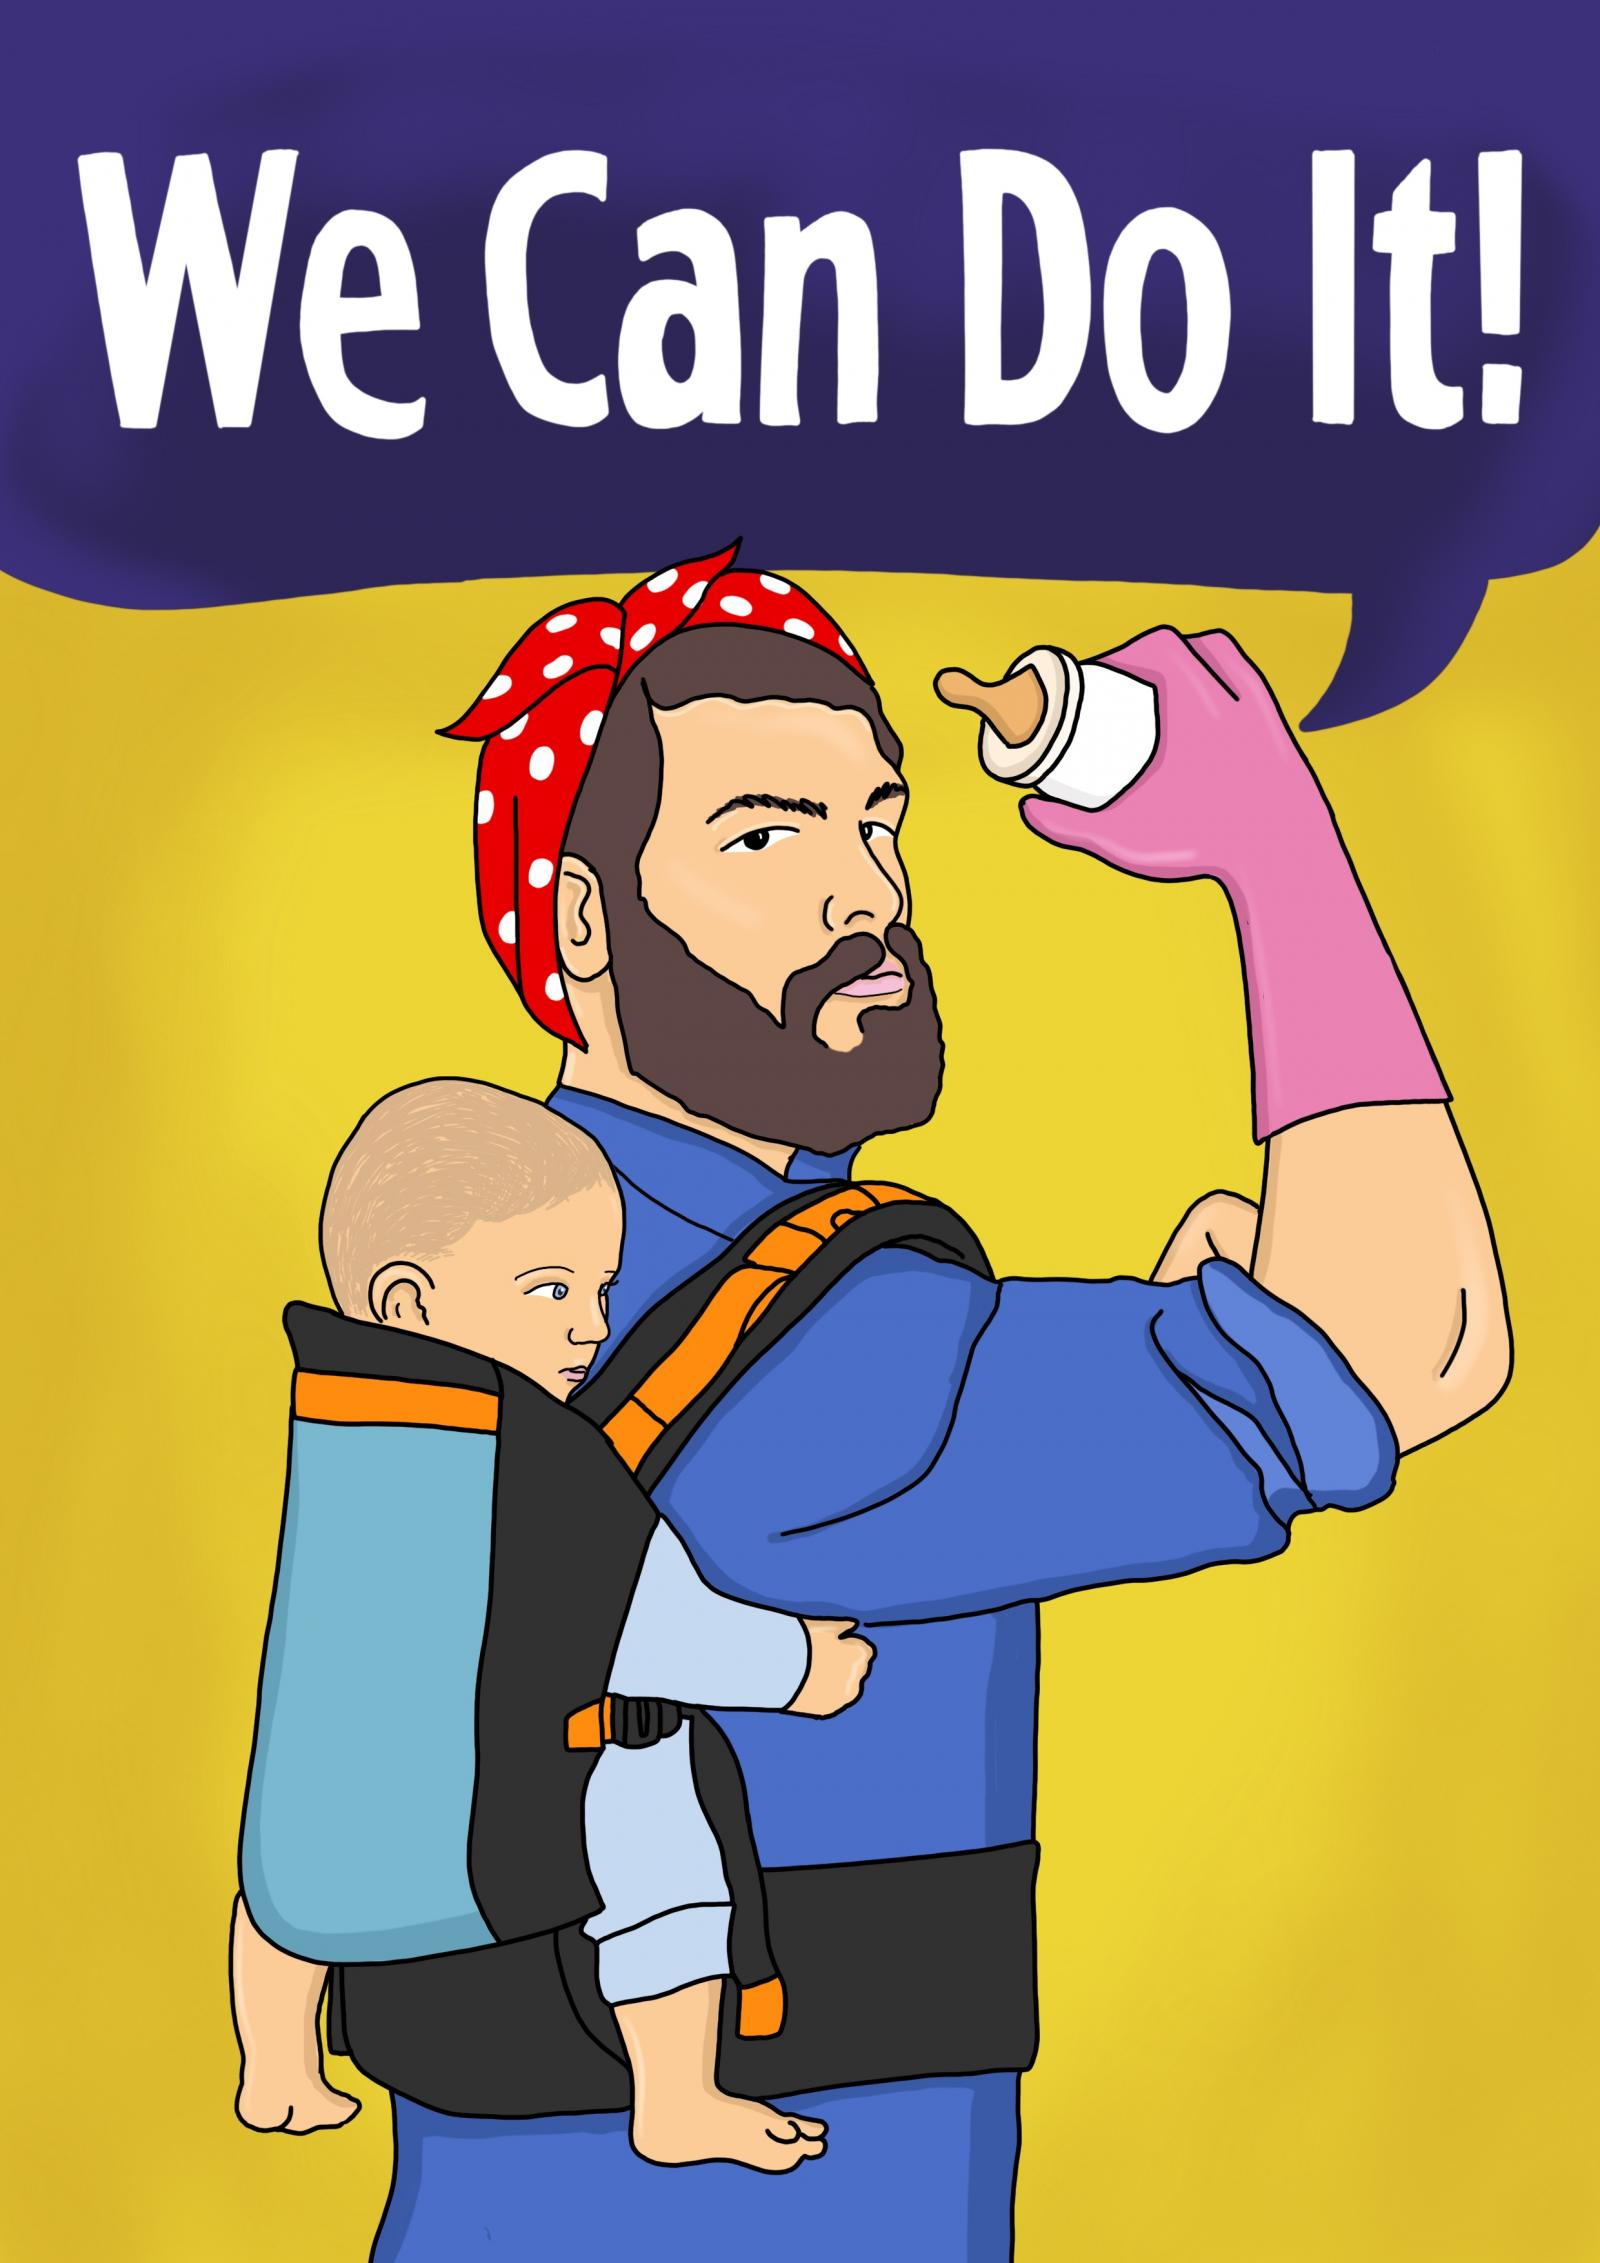 Share the leave - We can do it - shared parental leave campaign